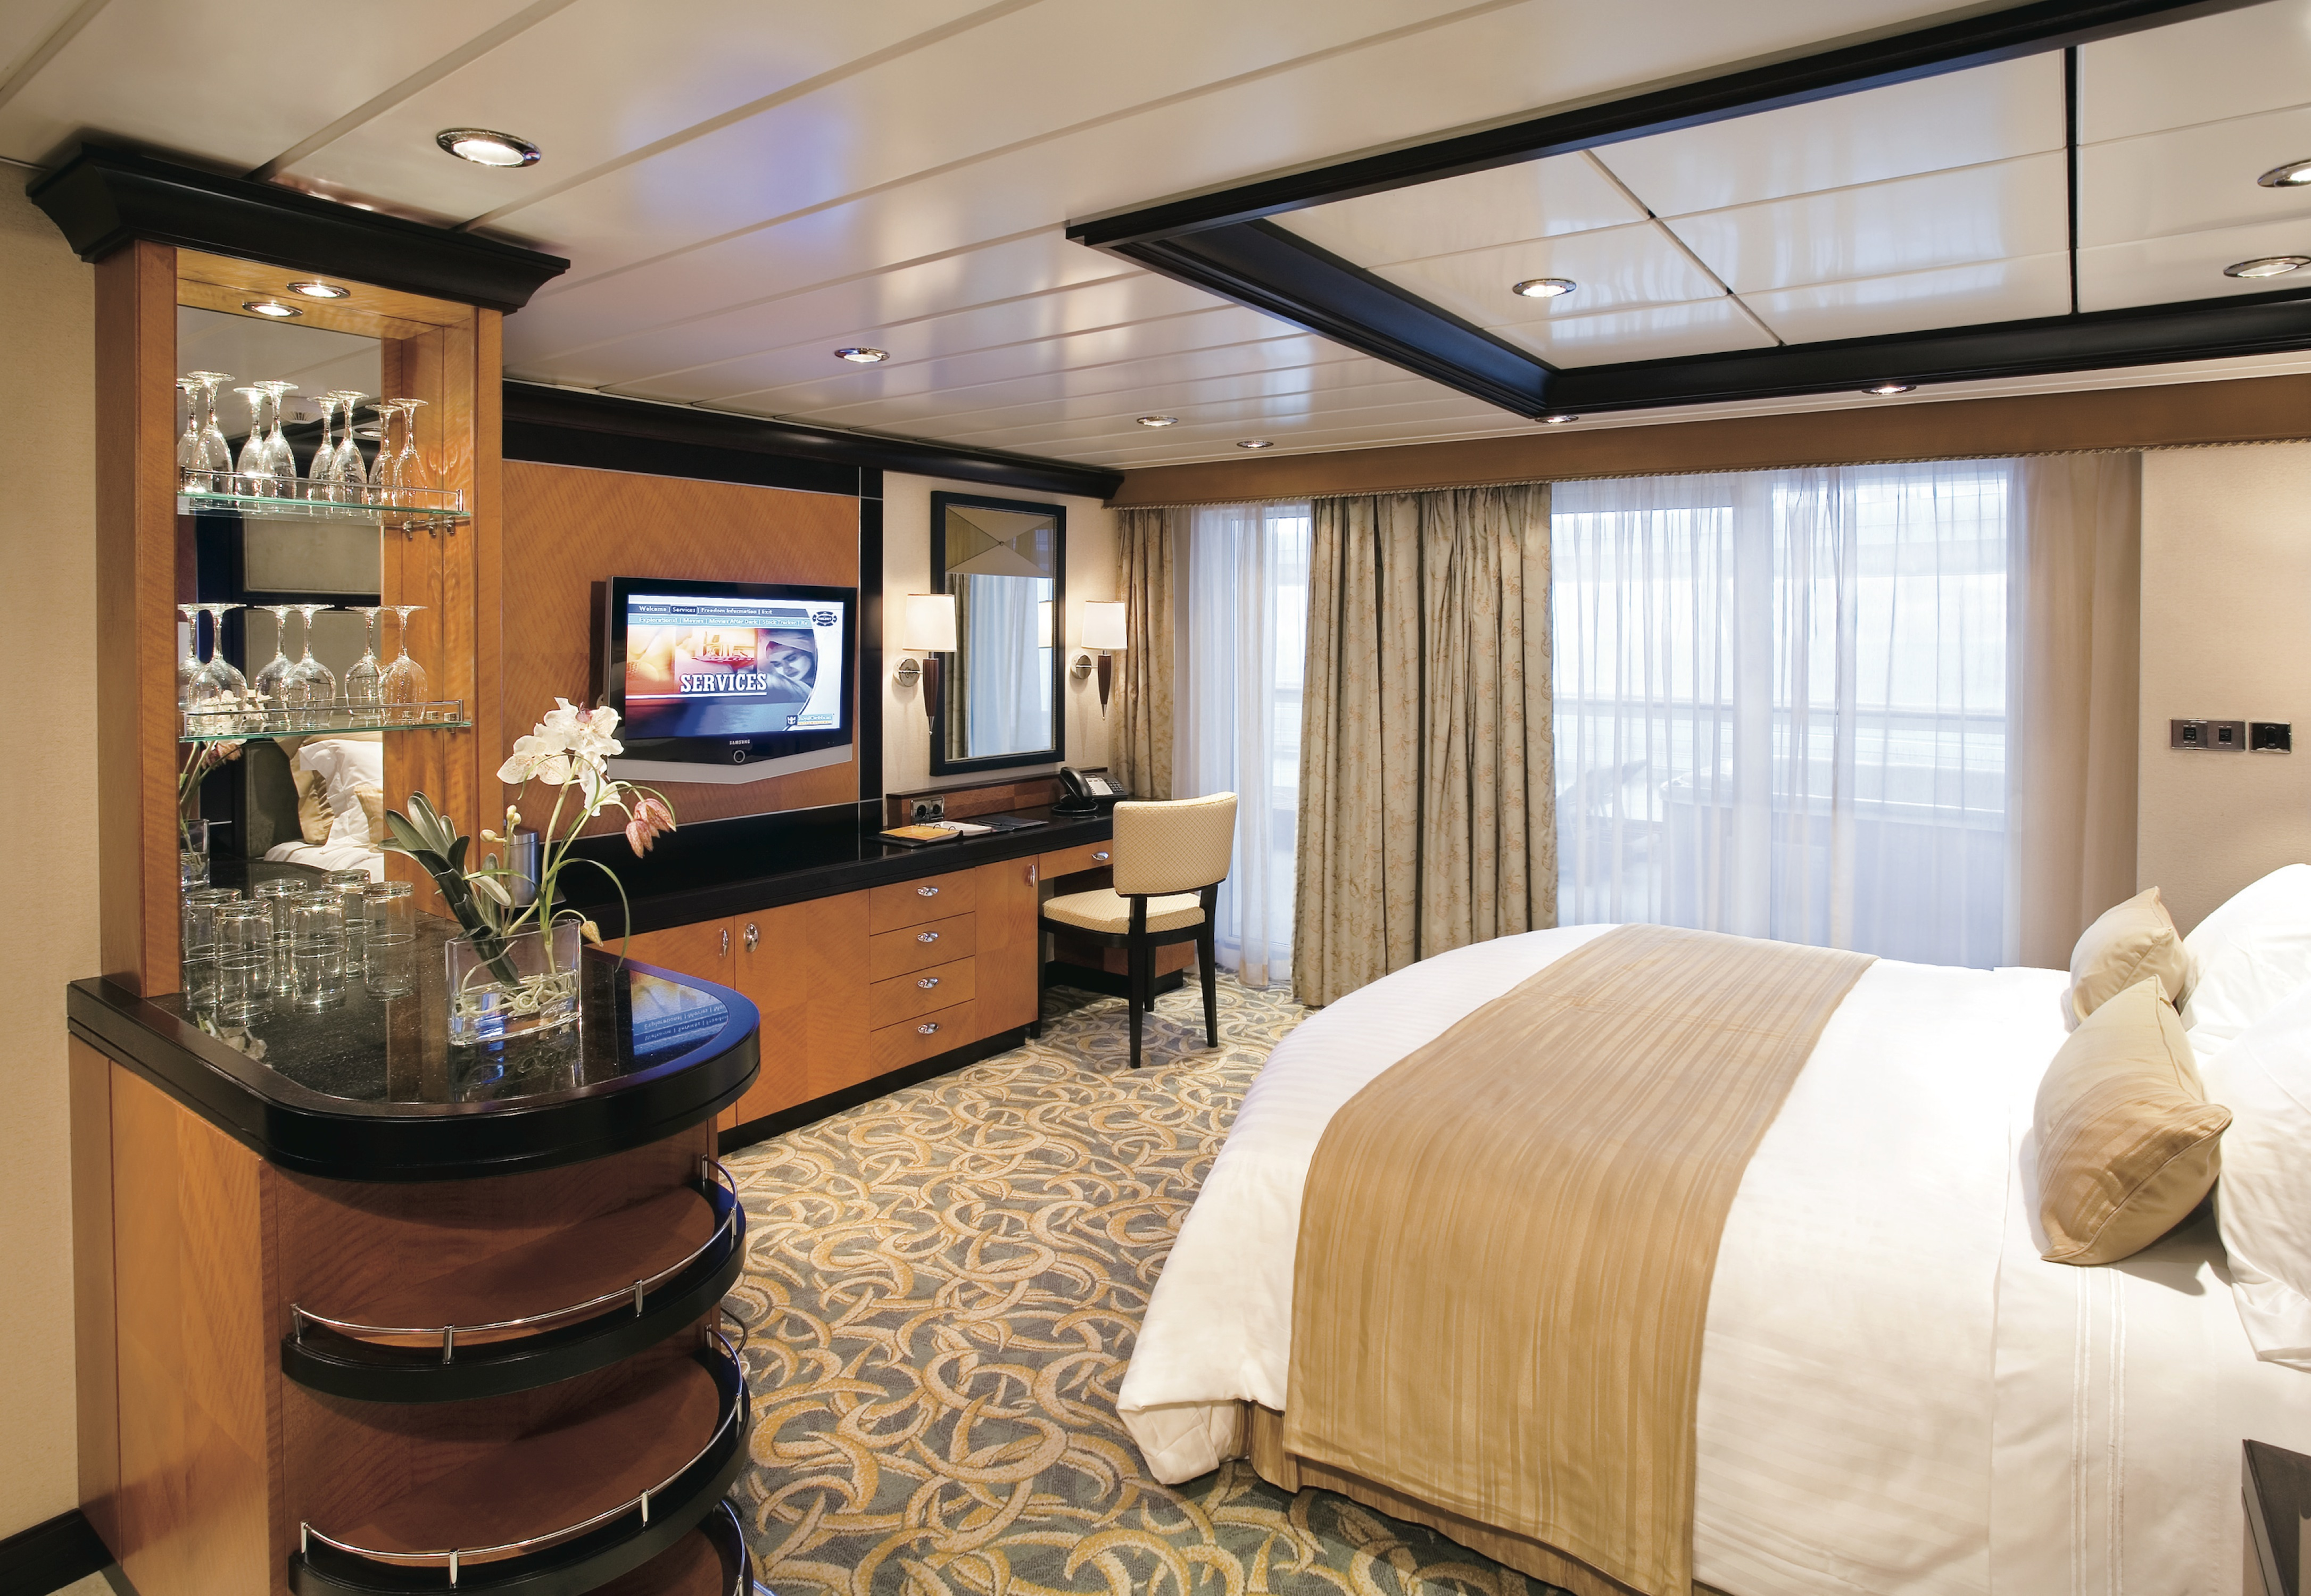 Royal Caribbean International Freedom of the Seas Accommodation Presidential Family Suite 7.jpeg